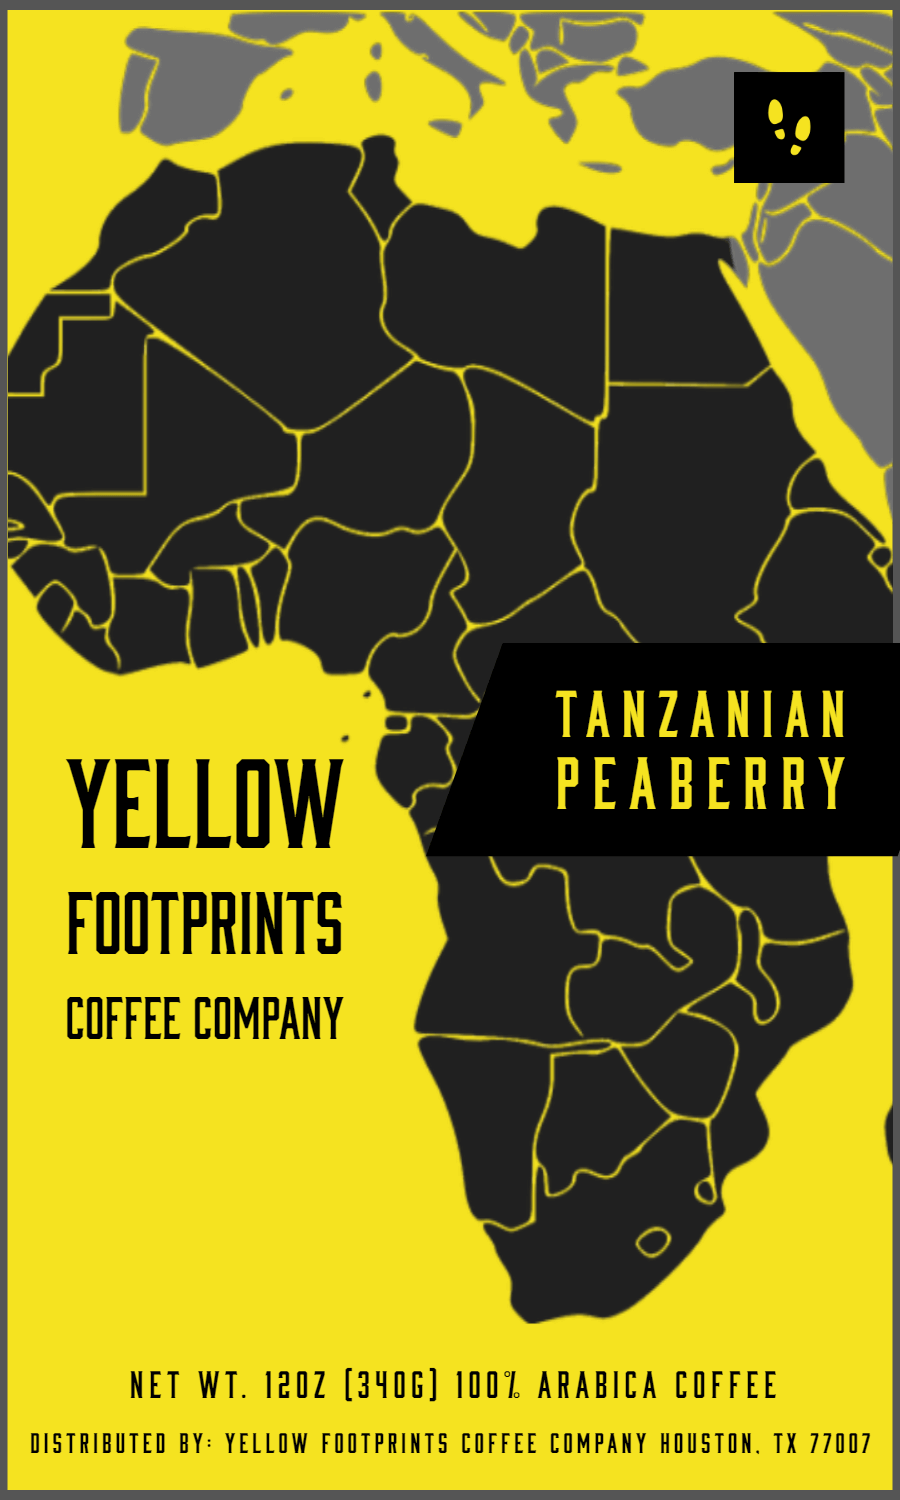 YFCC Tanzanian Peaberry from Yellow Footprints Coffee Company